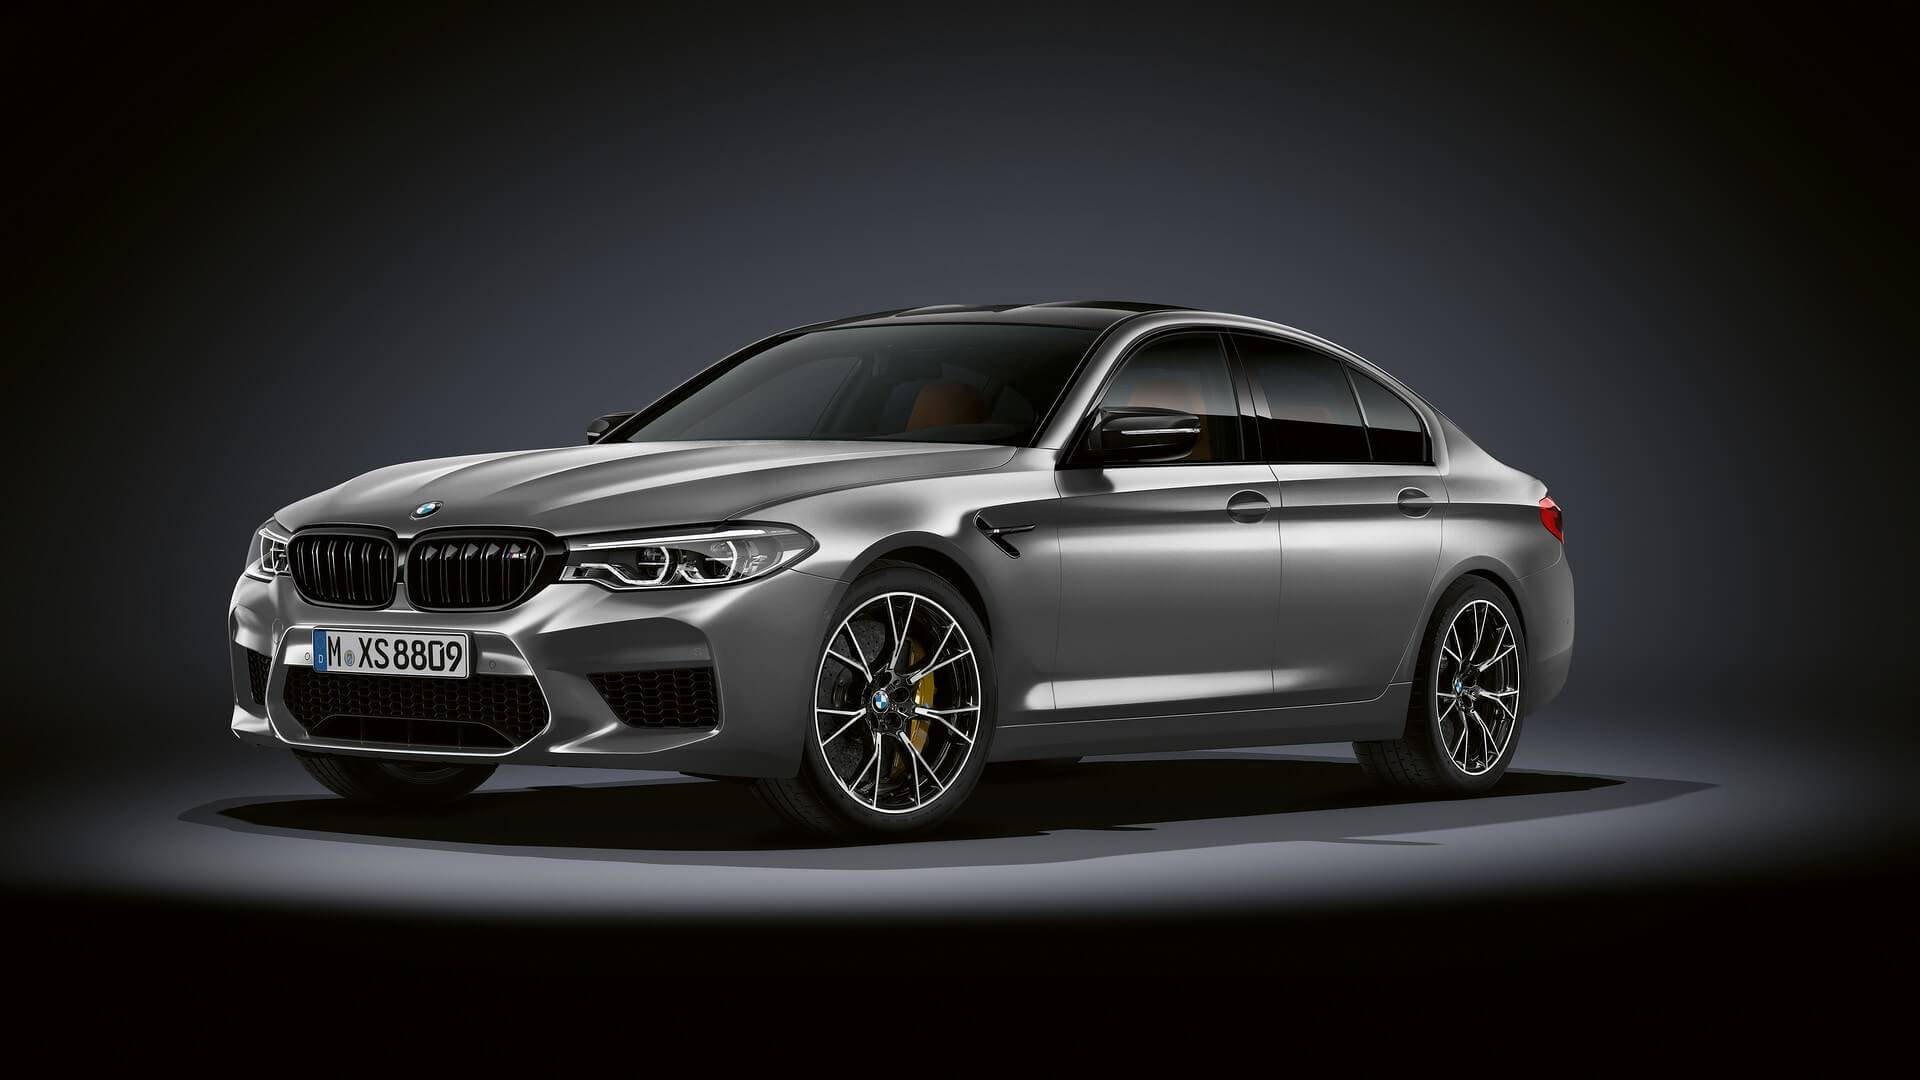 2019 Bmw M5 Competition 8